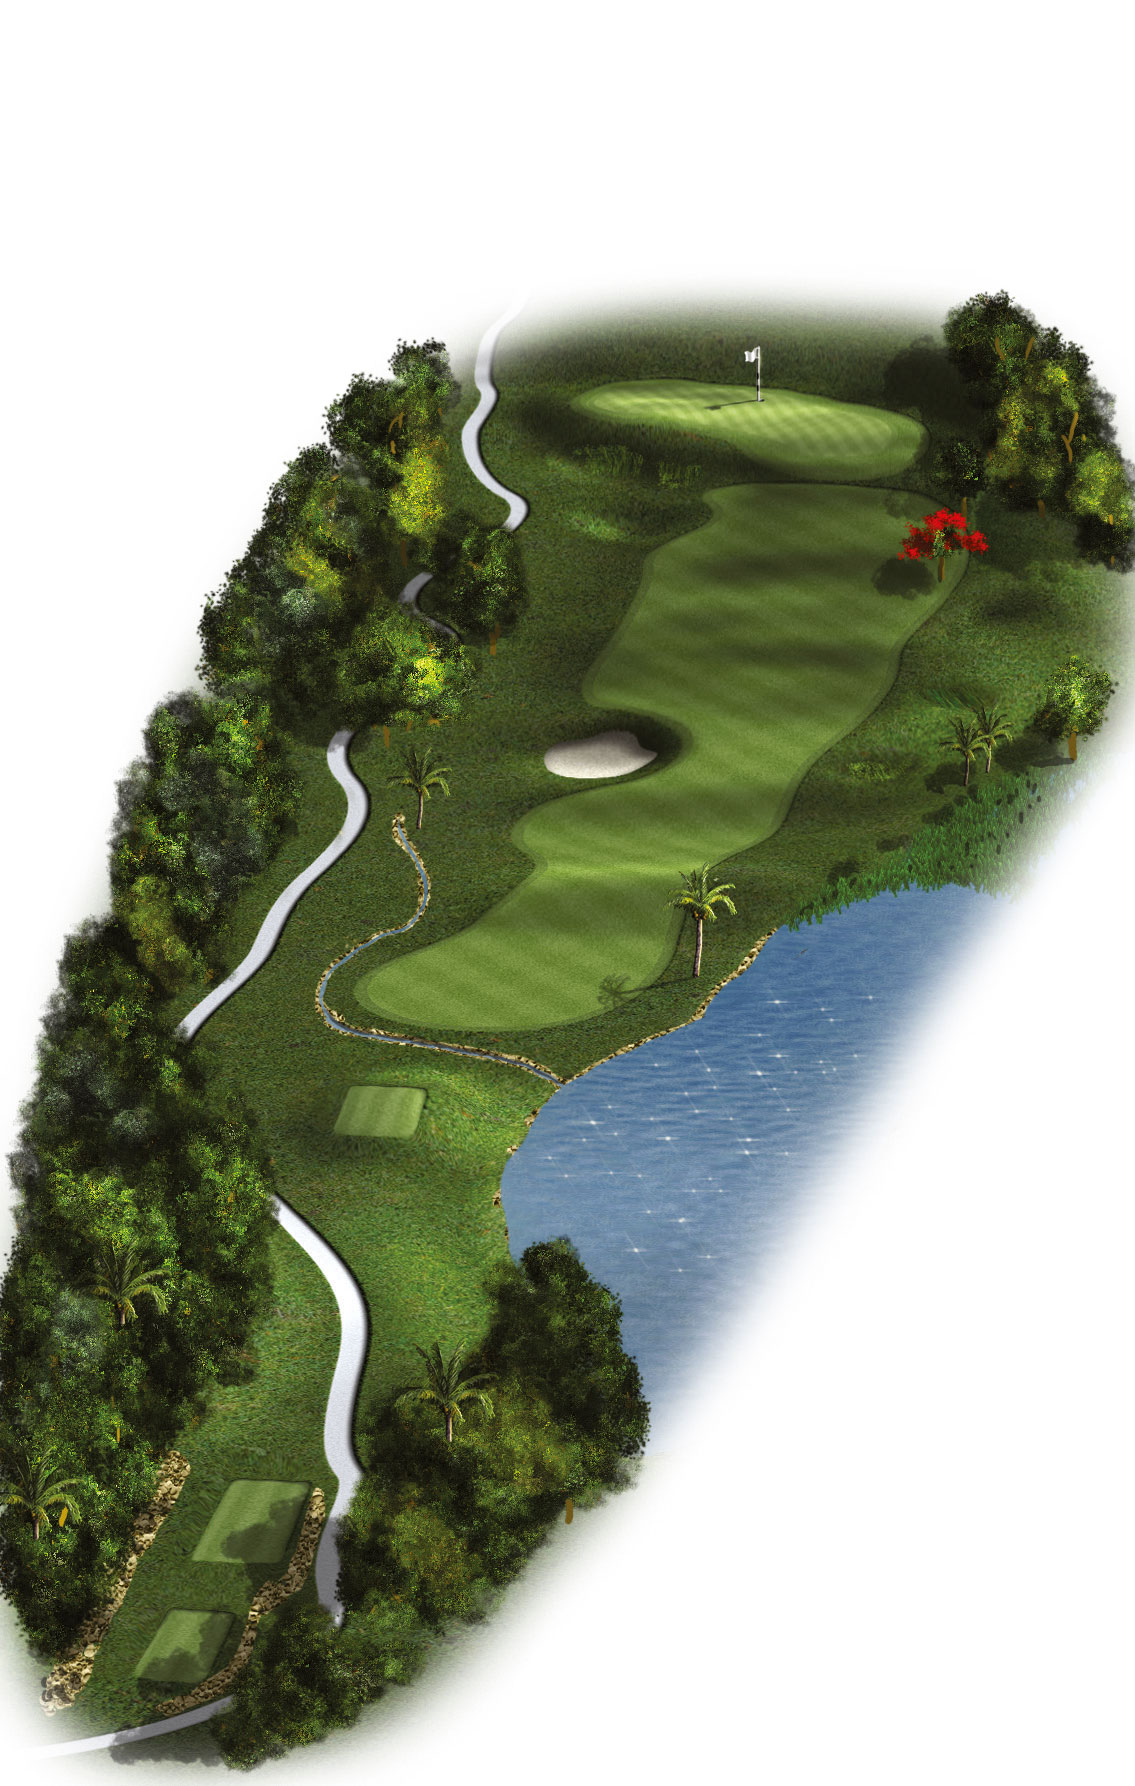 13th Hole - Par 4 (308 meters/339 yards)